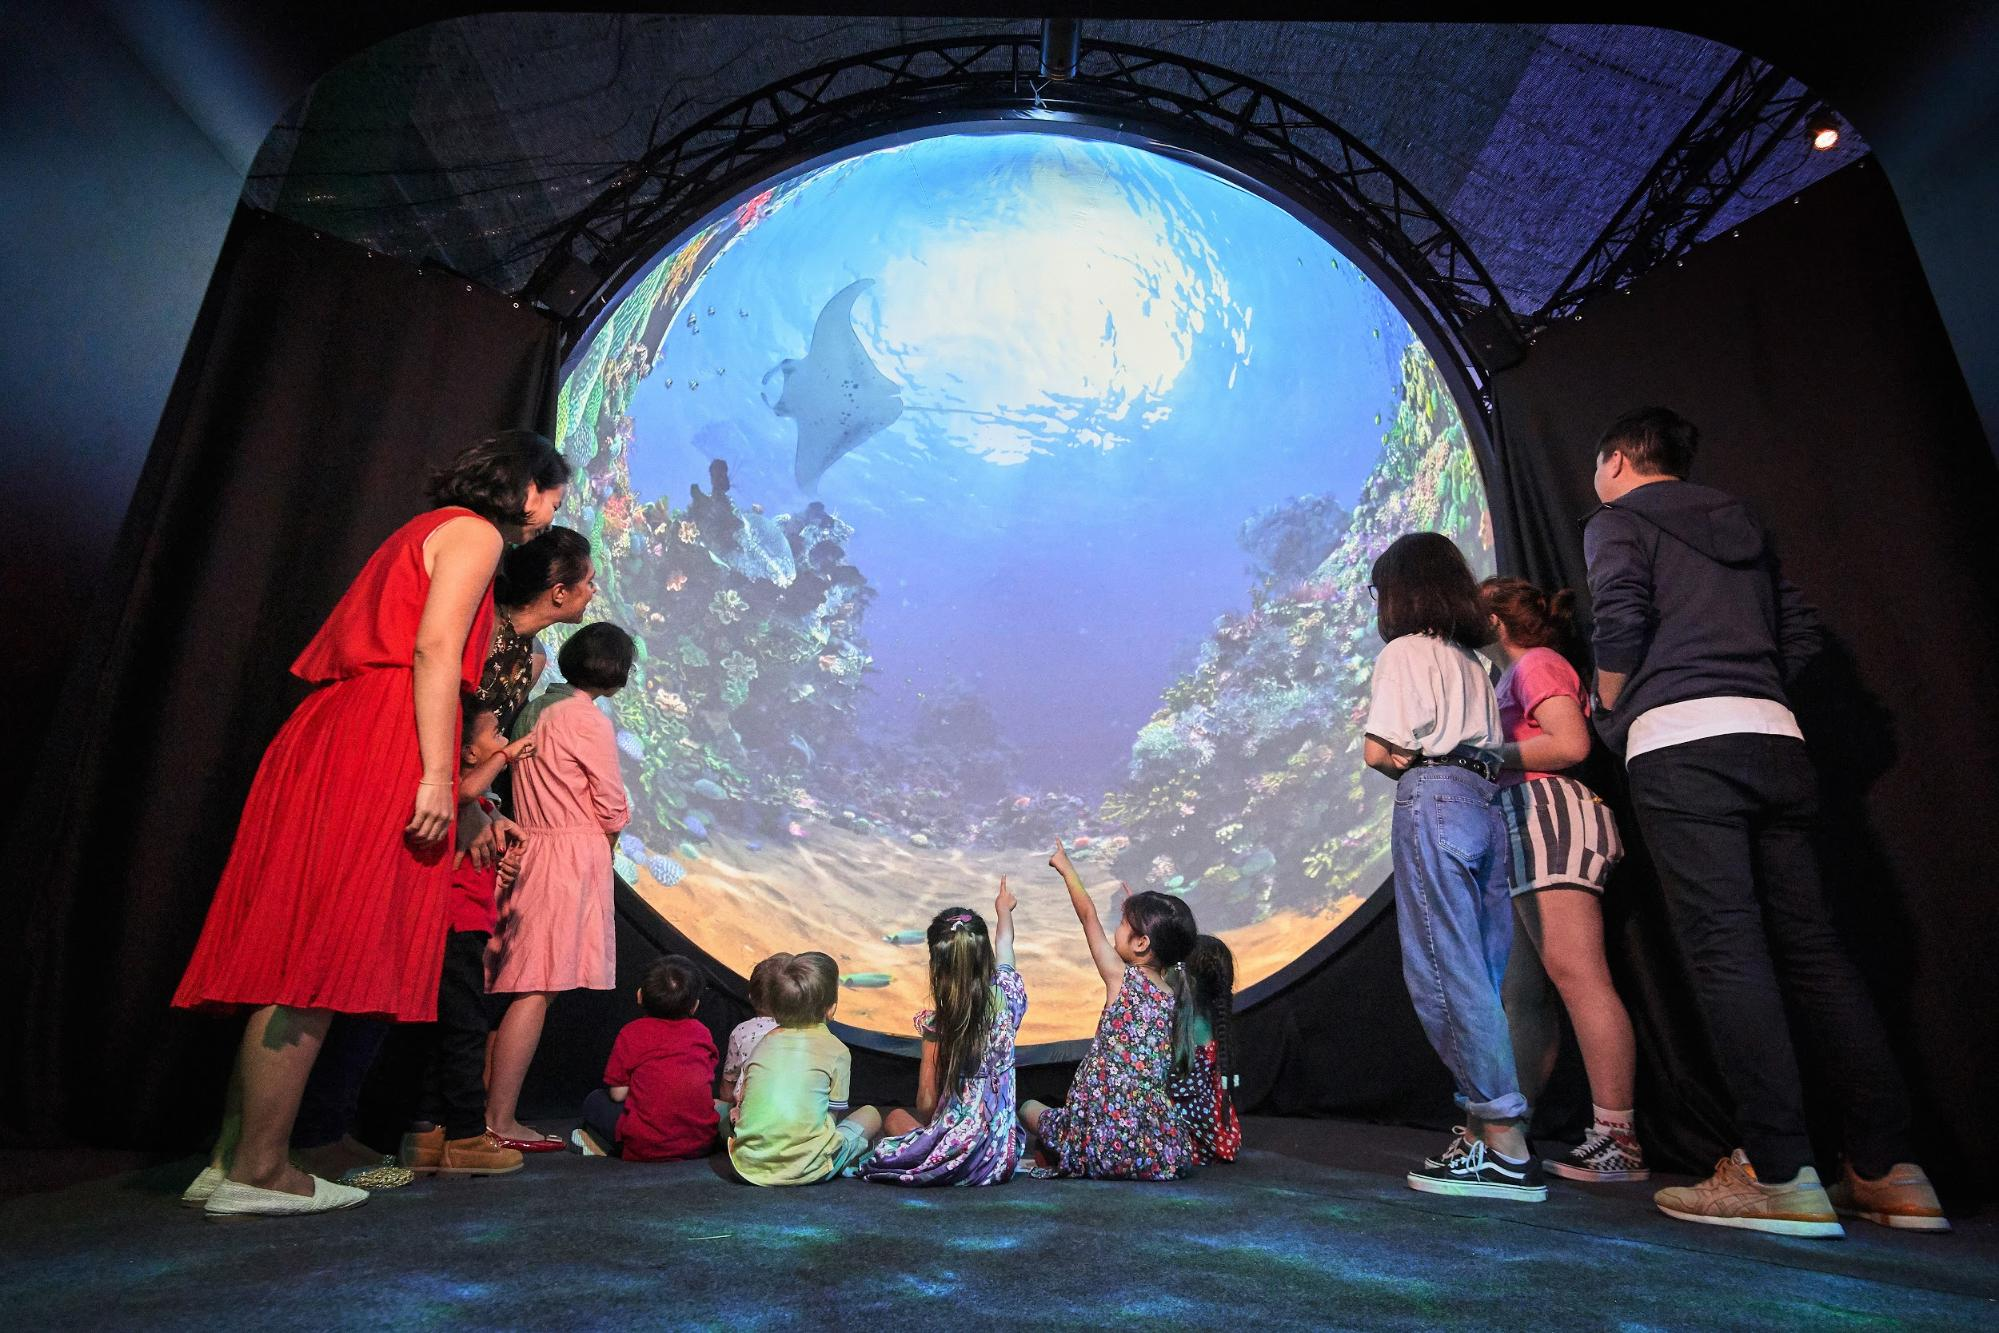 20 Things To Do In December 2020 – Virtual Christmas Wonderland, Bubble Dome Dining & BTS Pop-Up